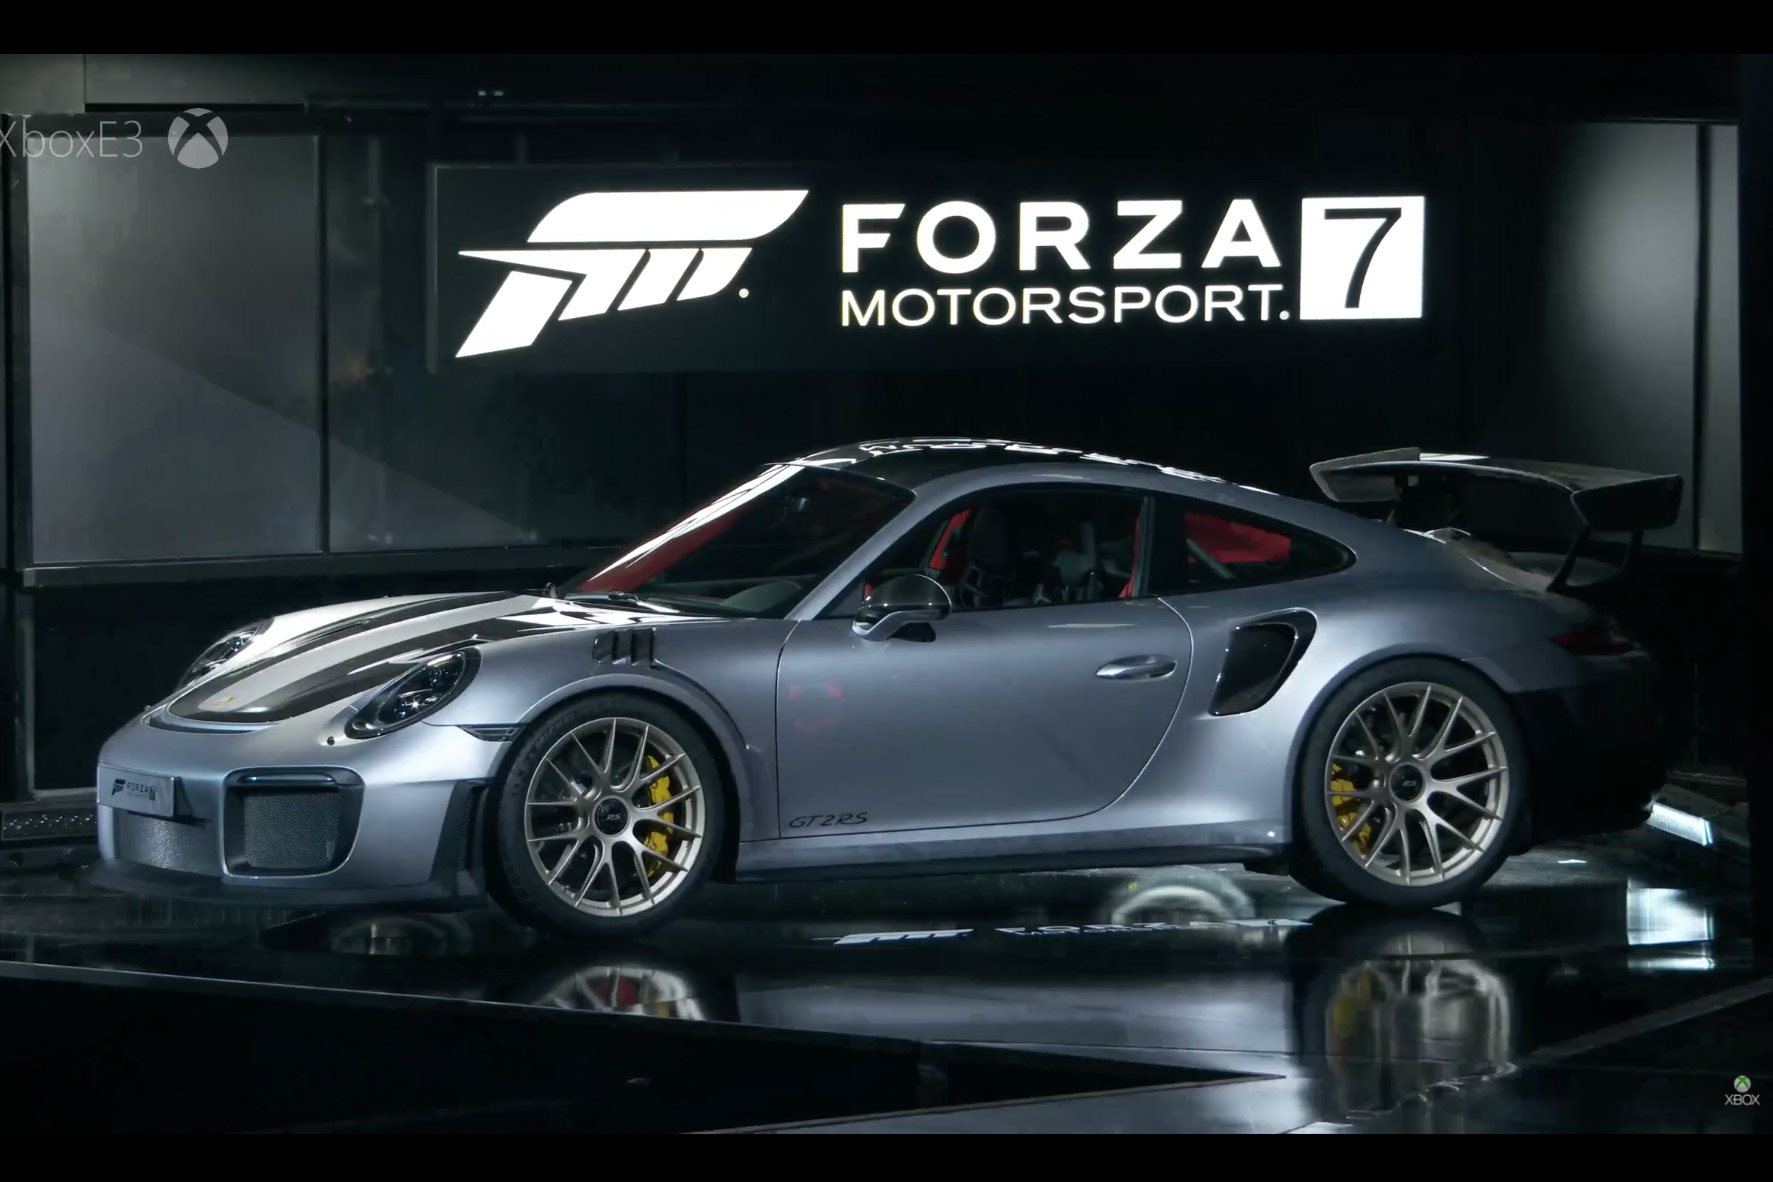 2018 porsche 911 gt2 rs revealed at e3 gaming convention wheels. Black Bedroom Furniture Sets. Home Design Ideas